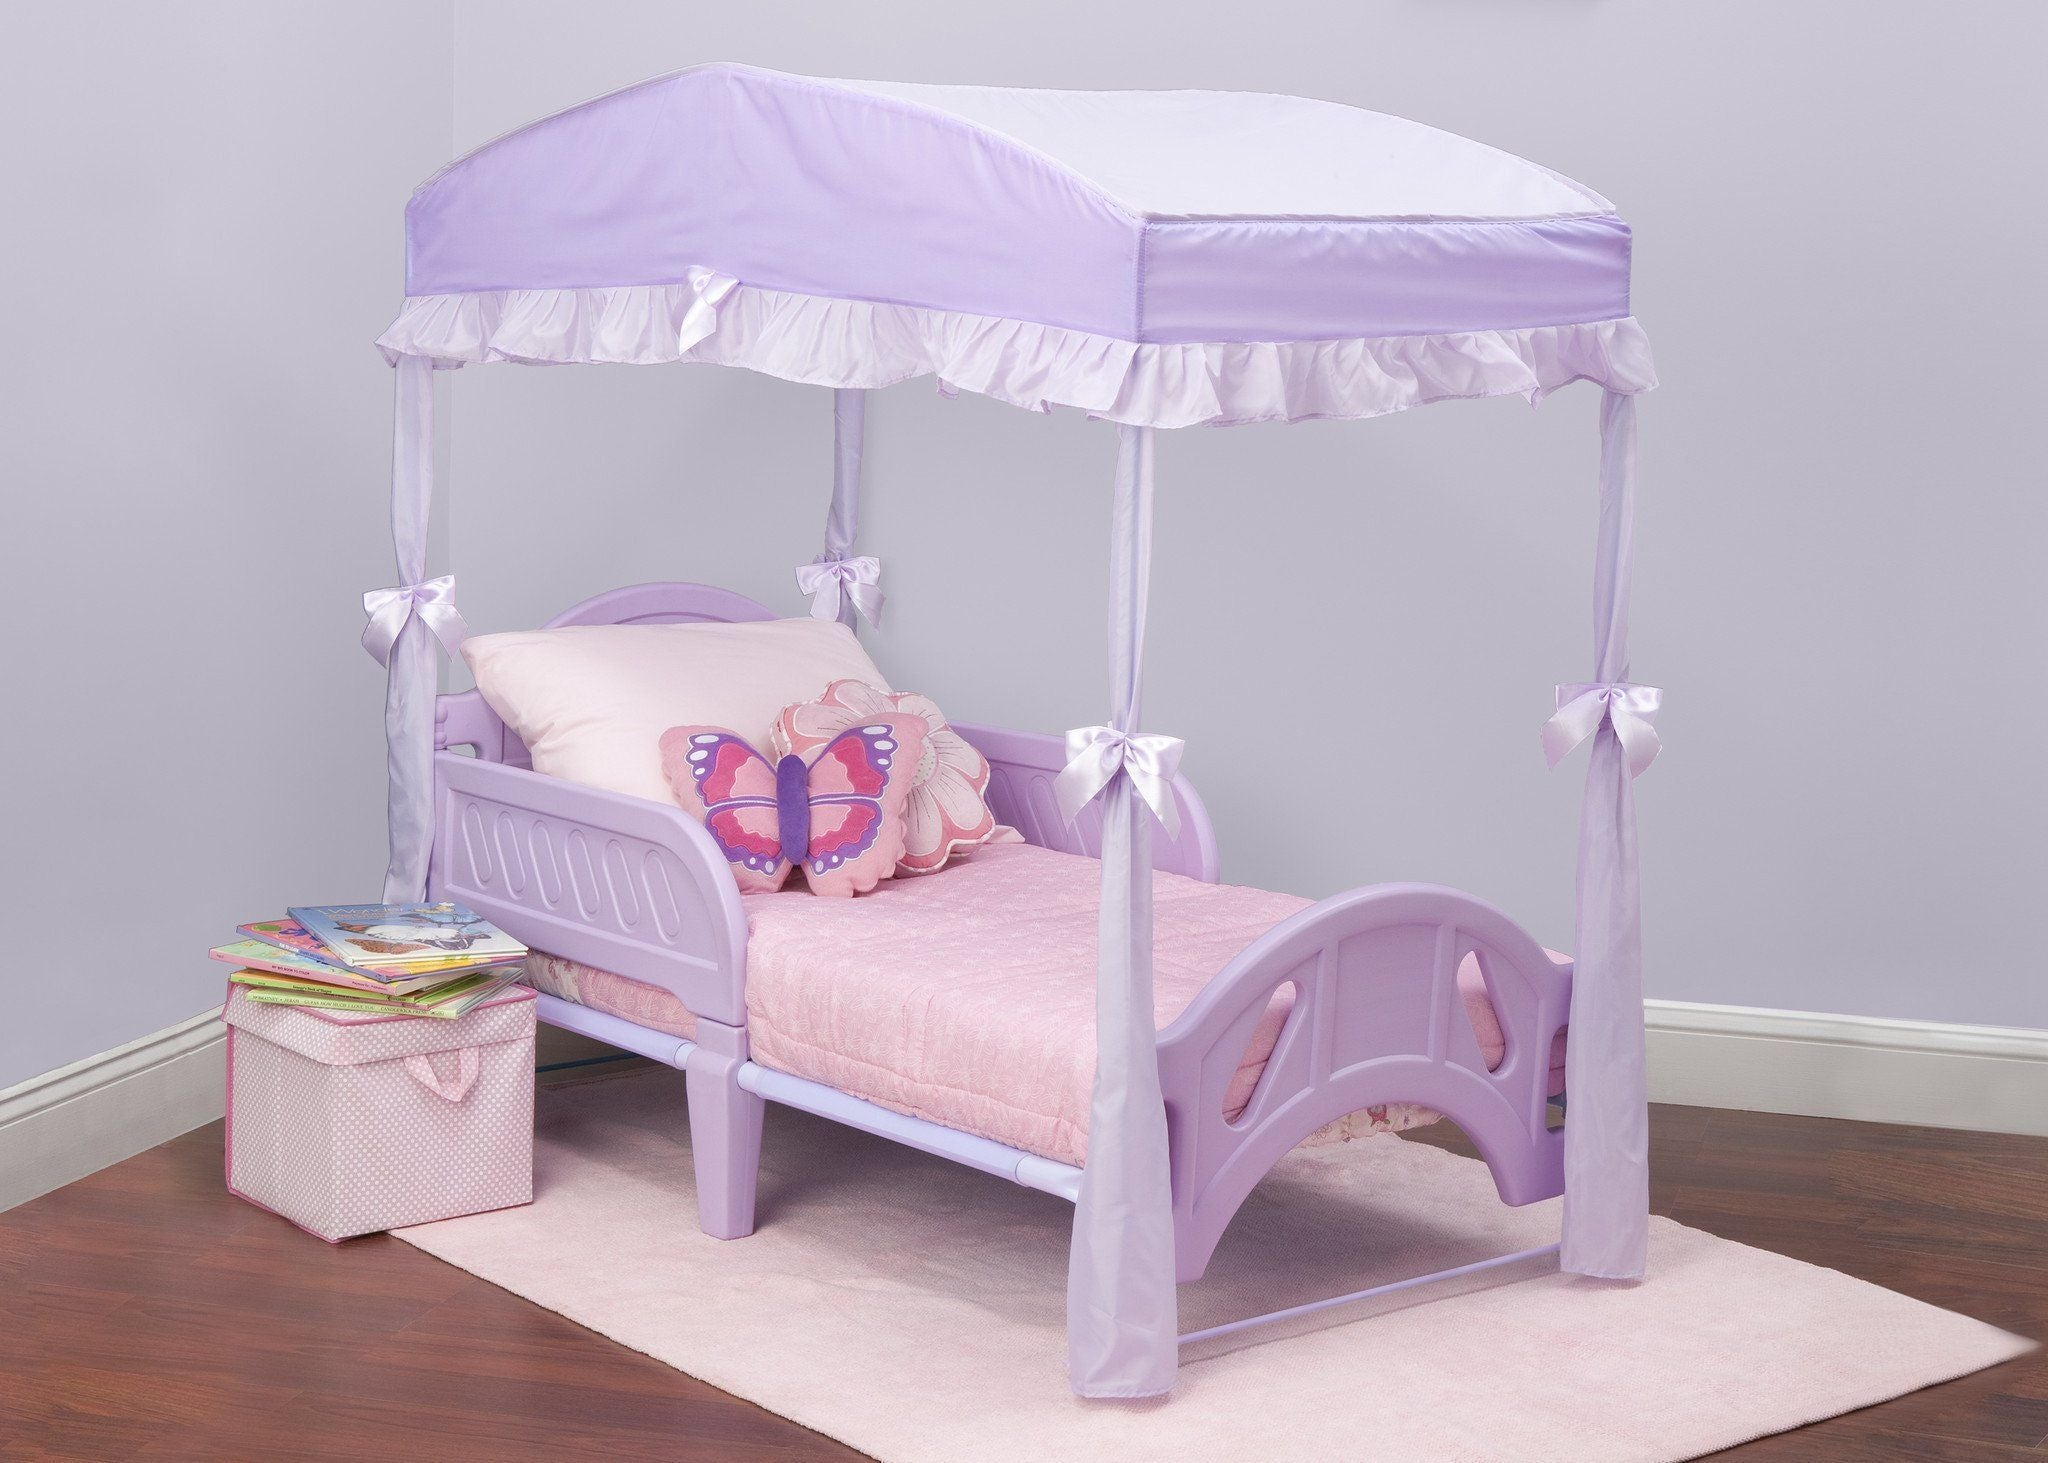 beds plastic side products mickey children mouse bed res right view footboard toddler delta hi